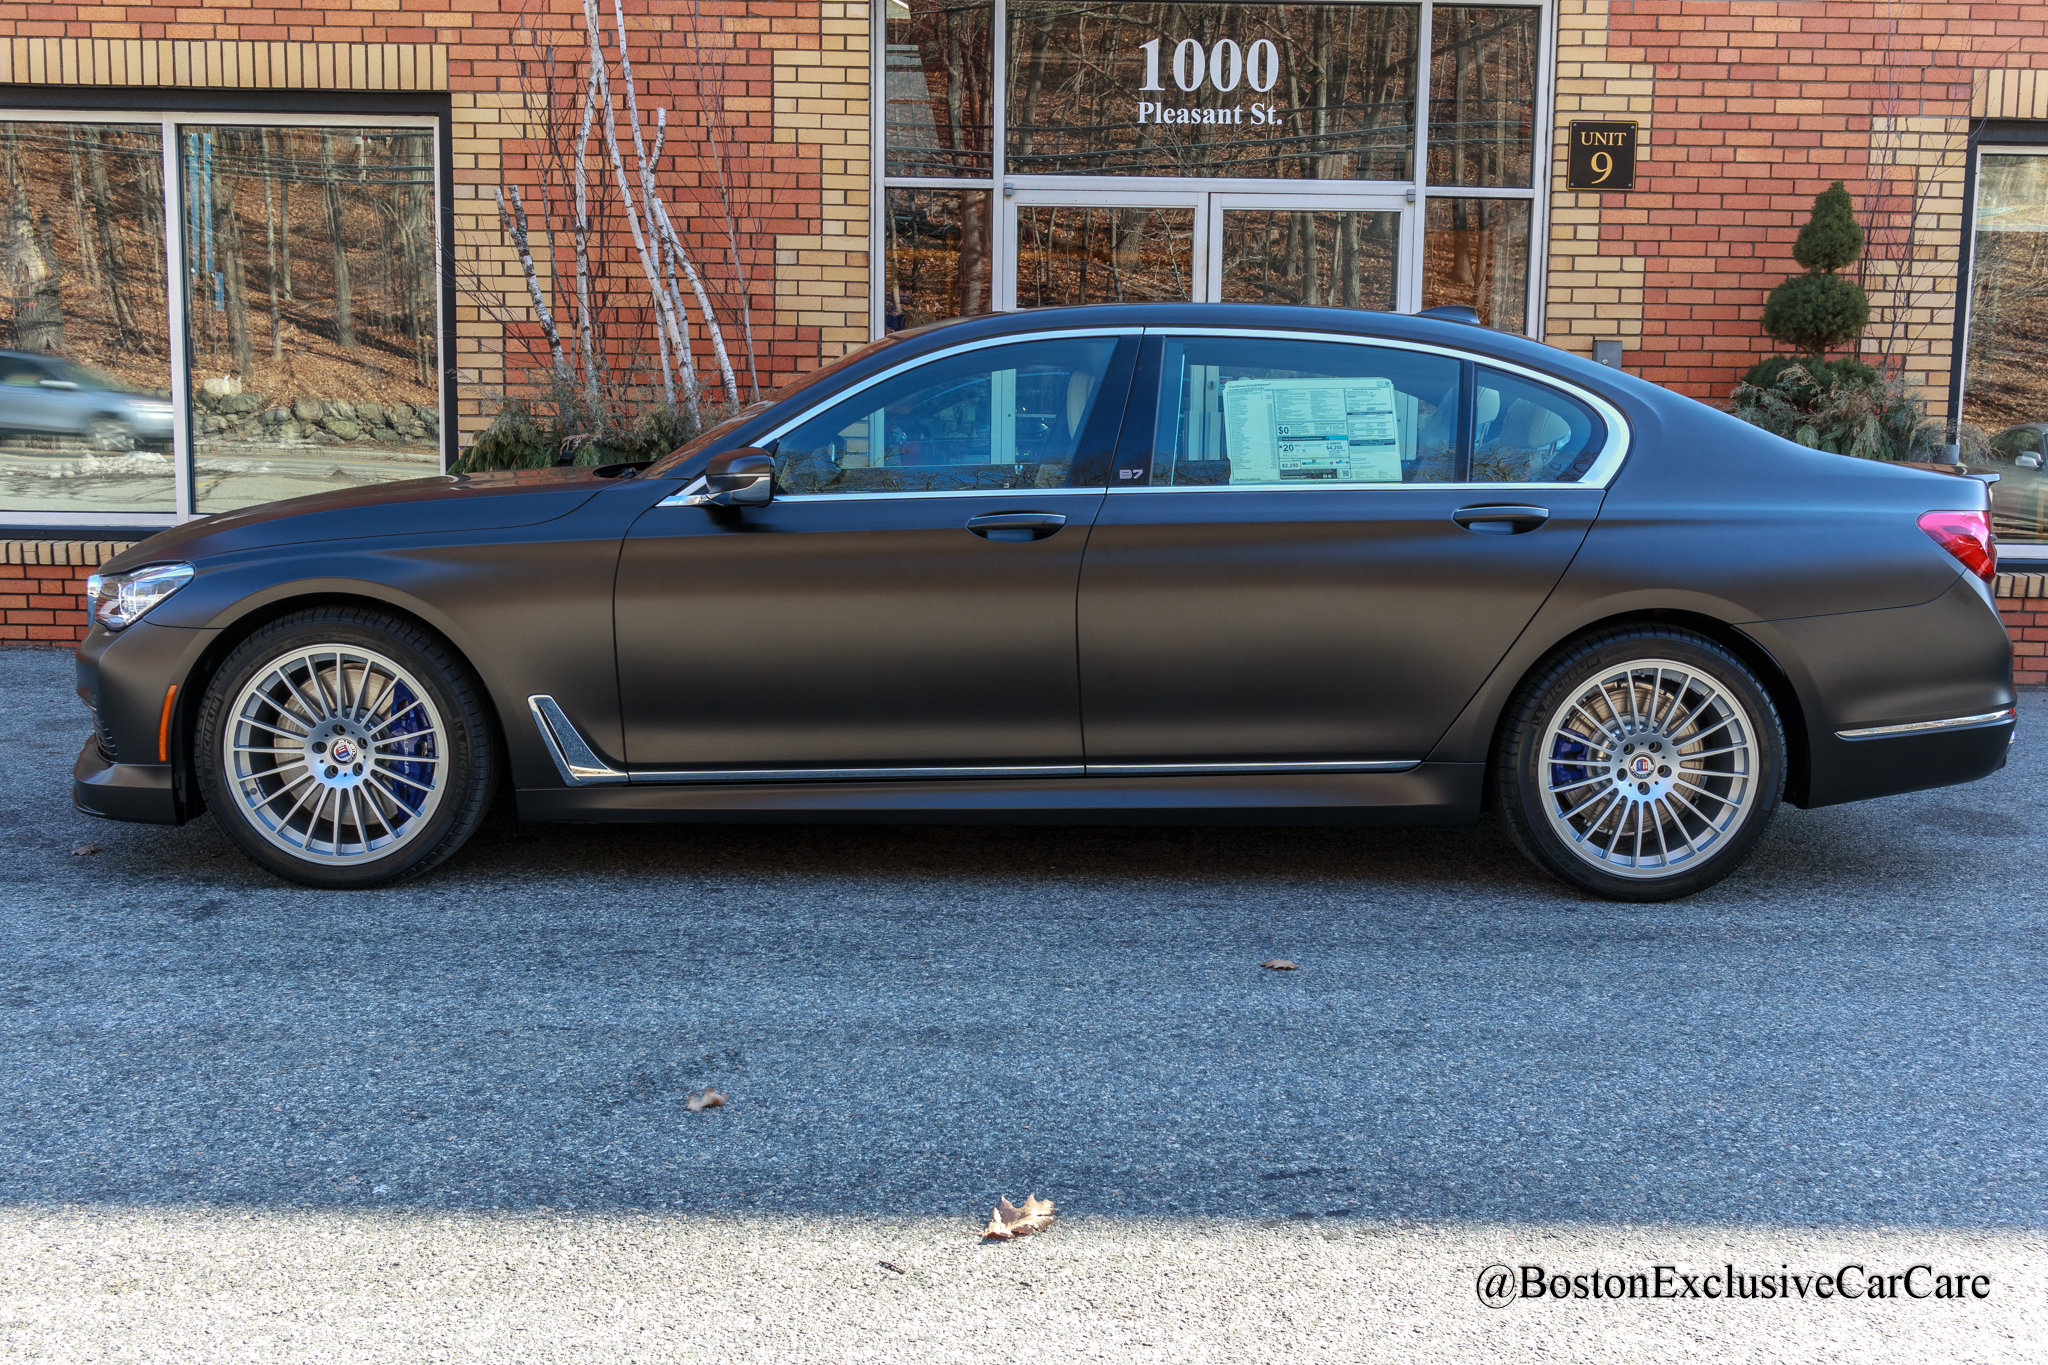 2019 BMW Alpina B7 - Xpel Stealth full car wrap over frozen matte paint -